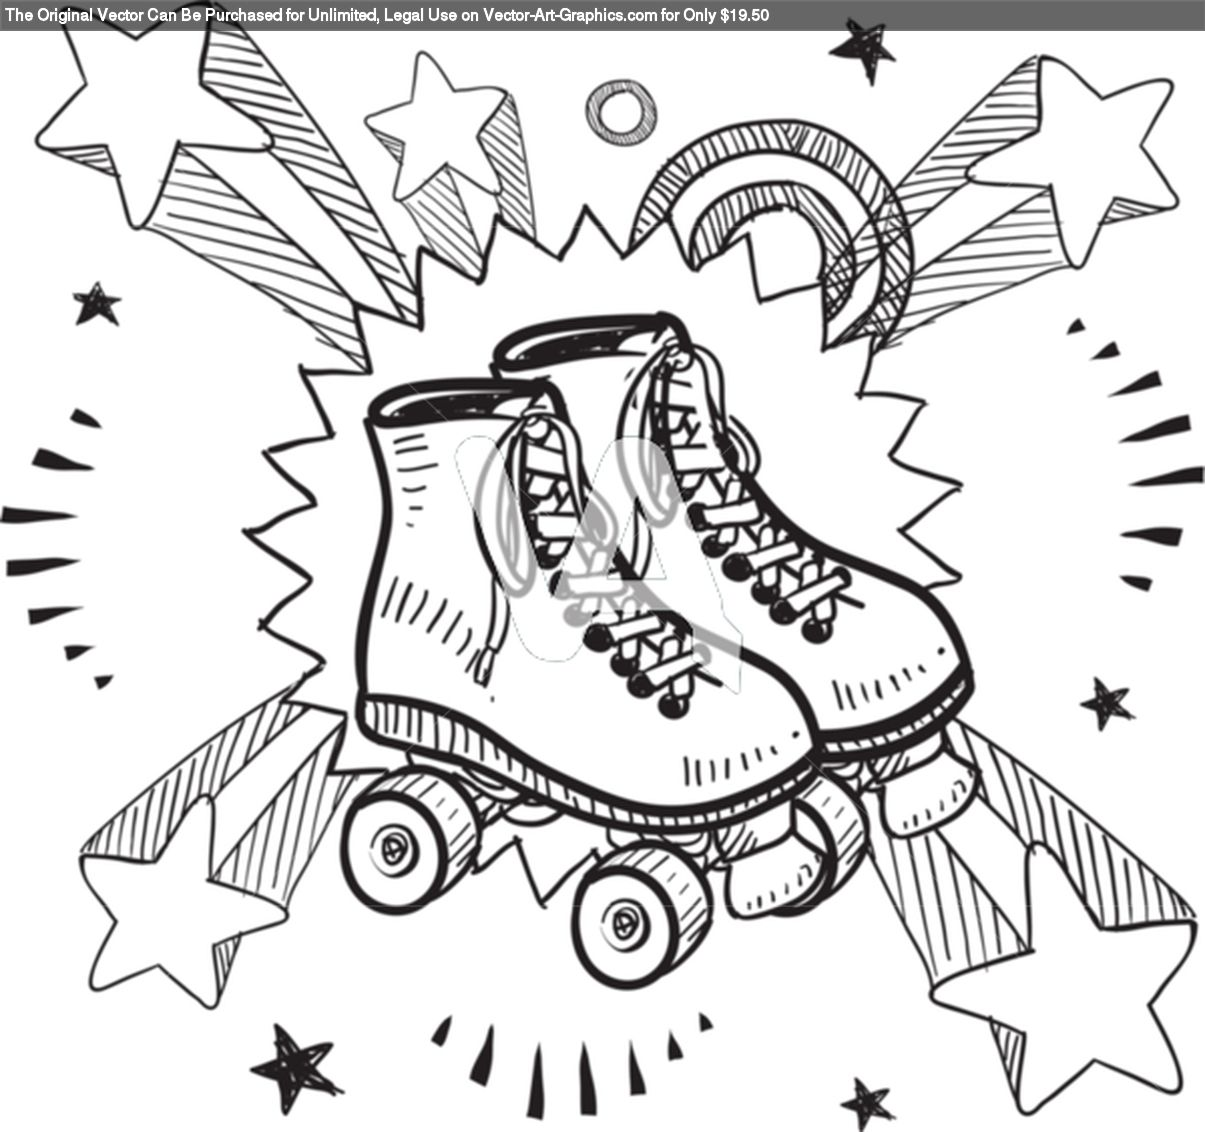 Roller Skates Excitement Sketch Roller Derby Skates Roller